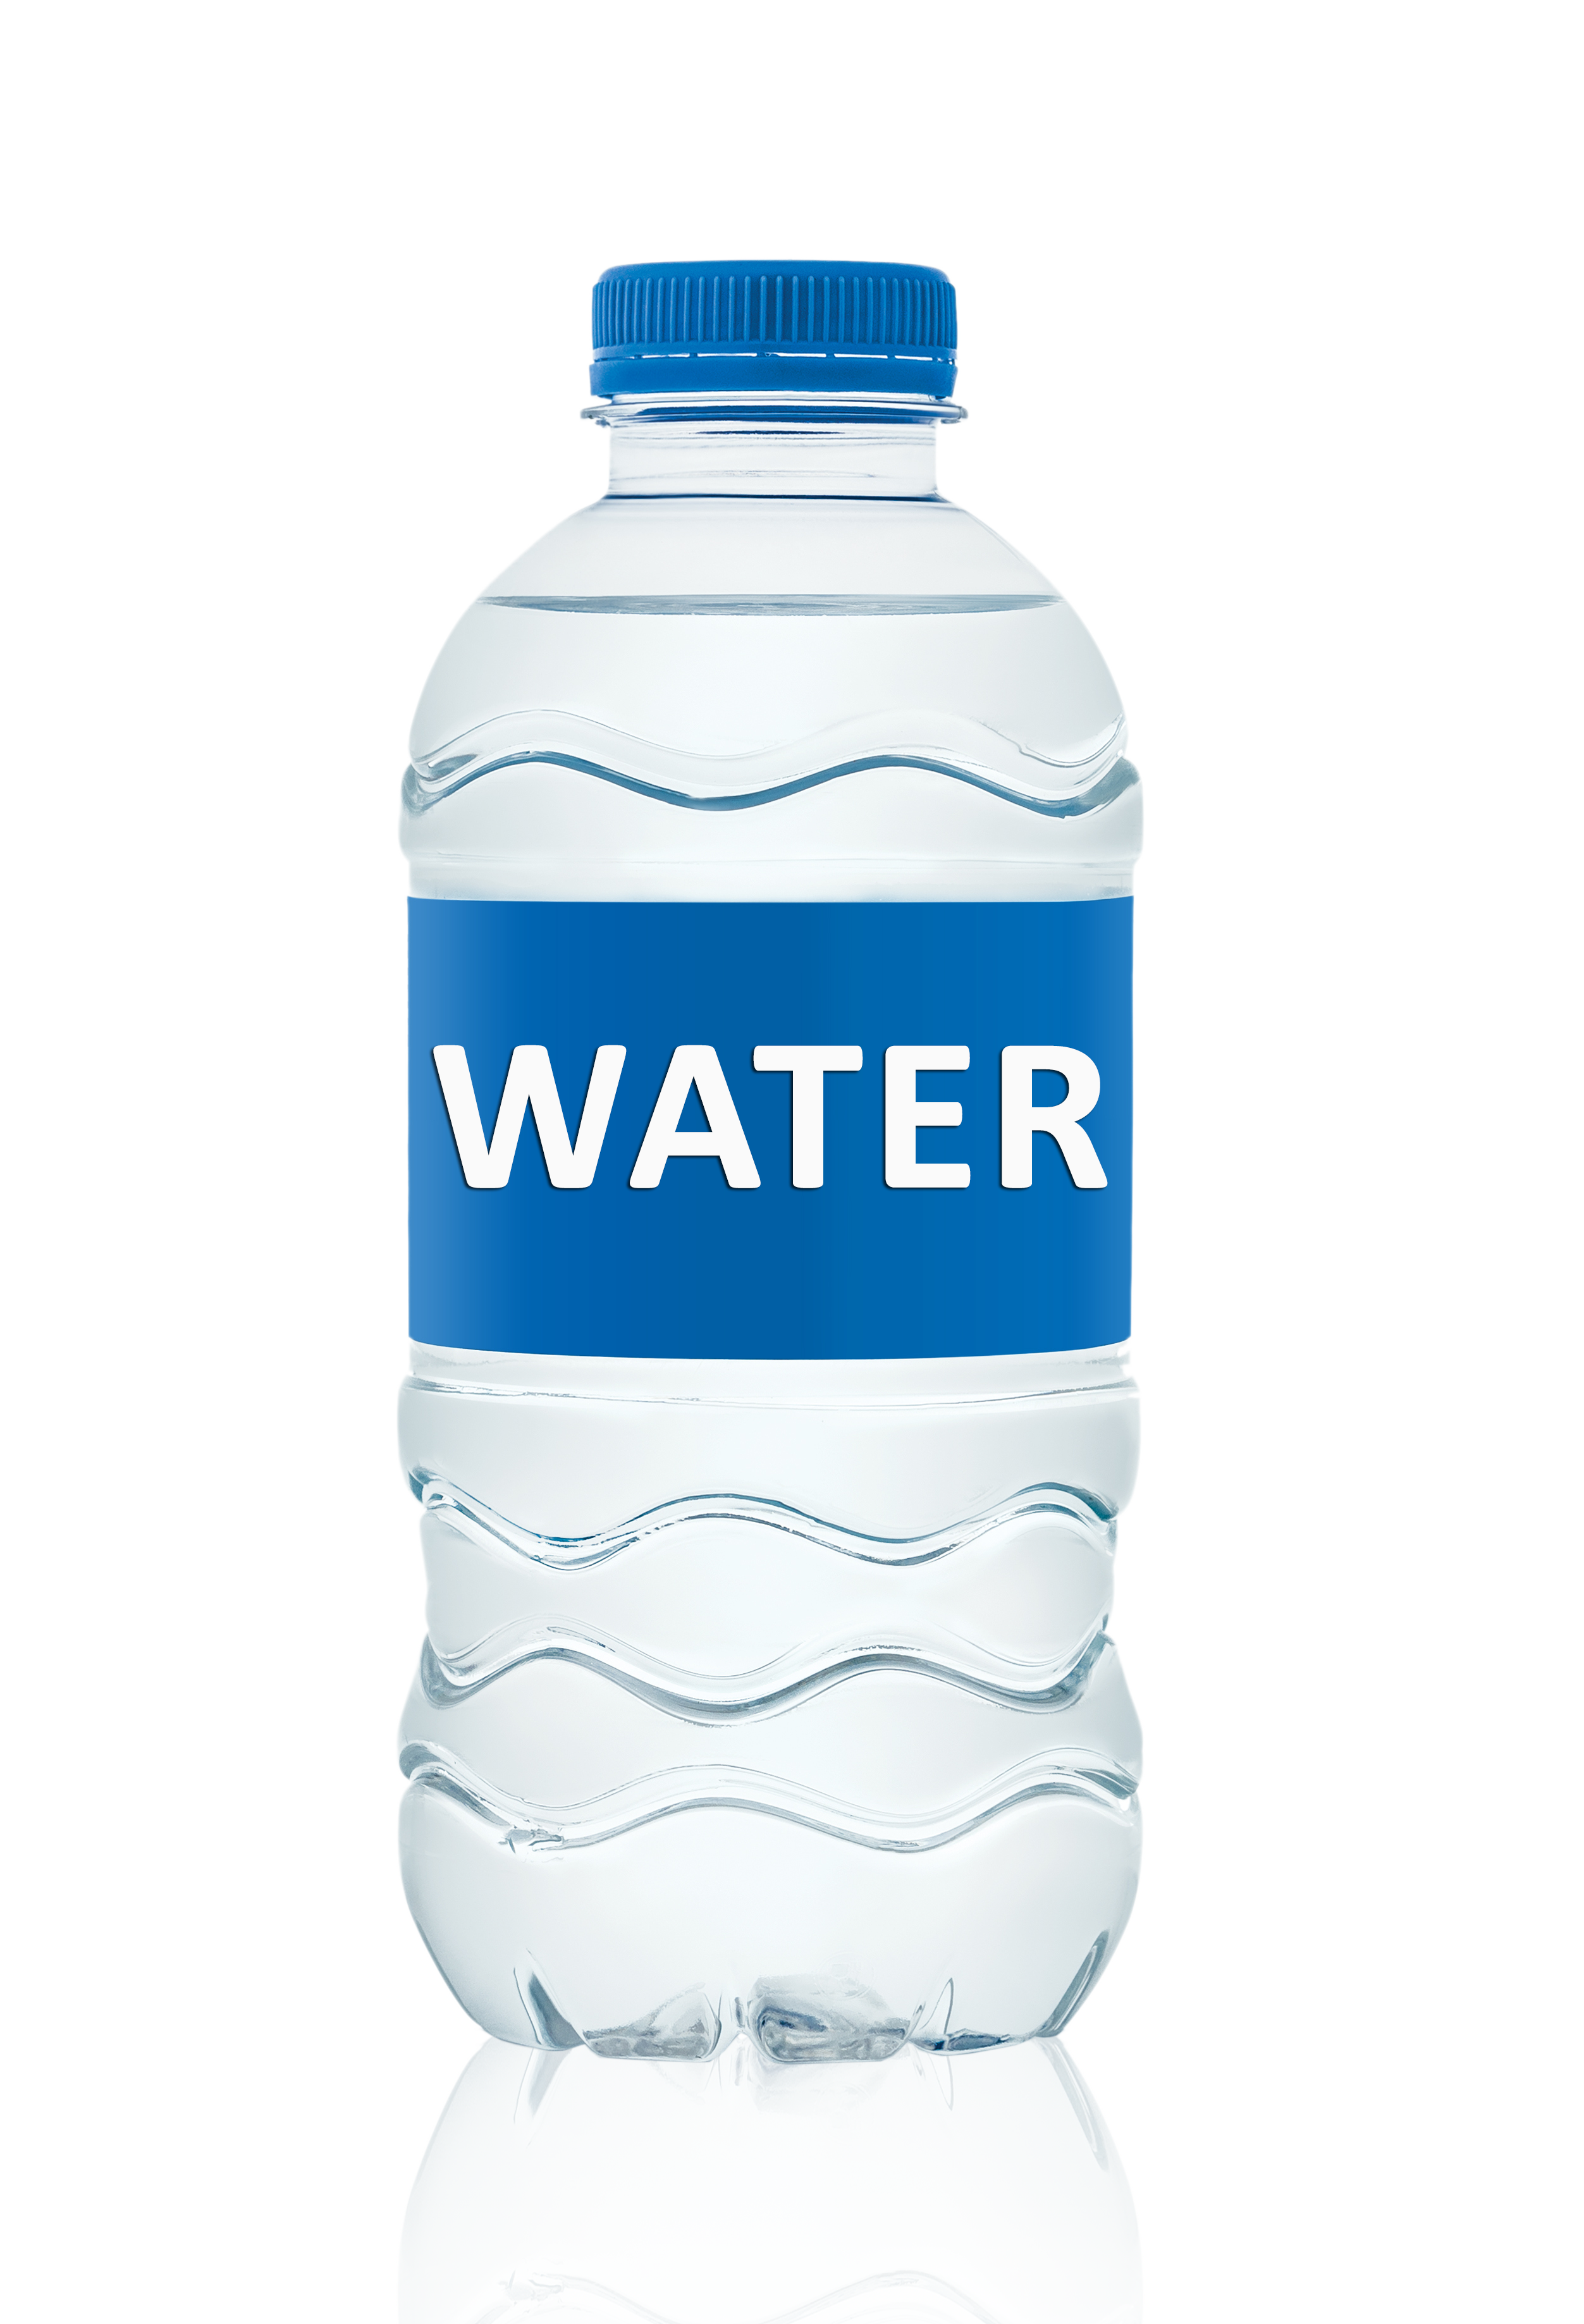 Bottle Of Water Png #53138.